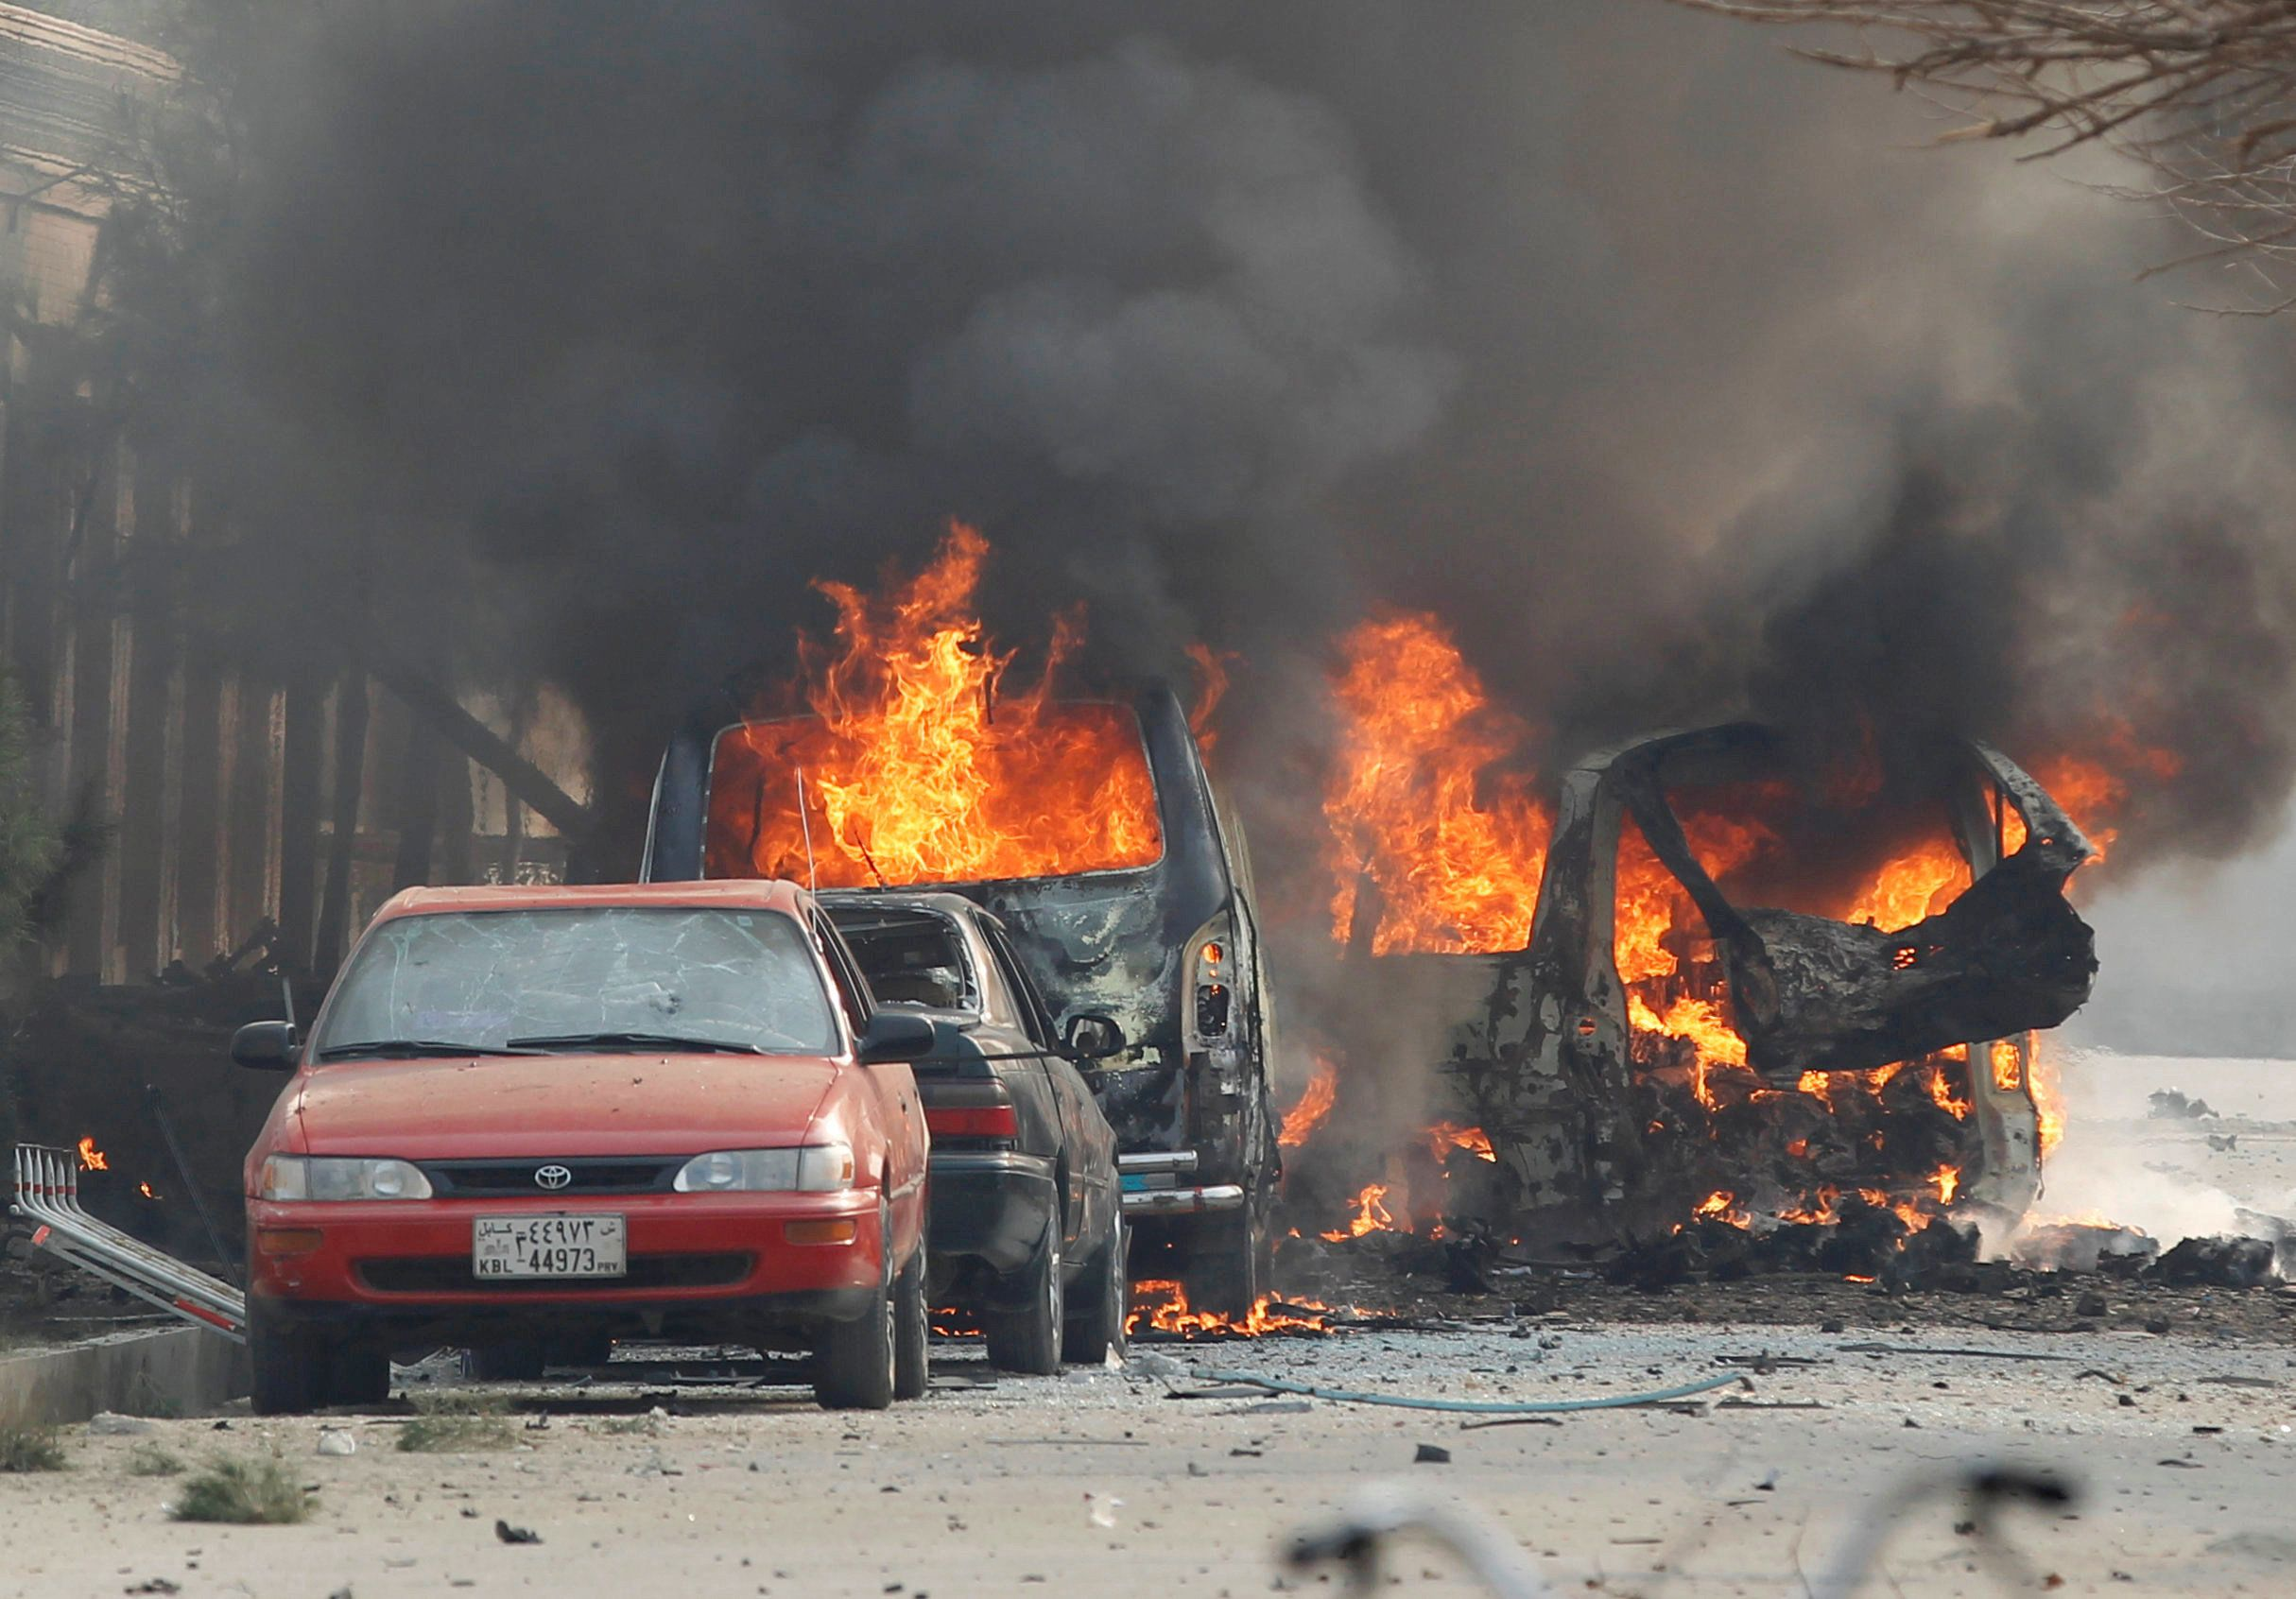 Vehicles are seen on fire after a blast in Jalalabad.